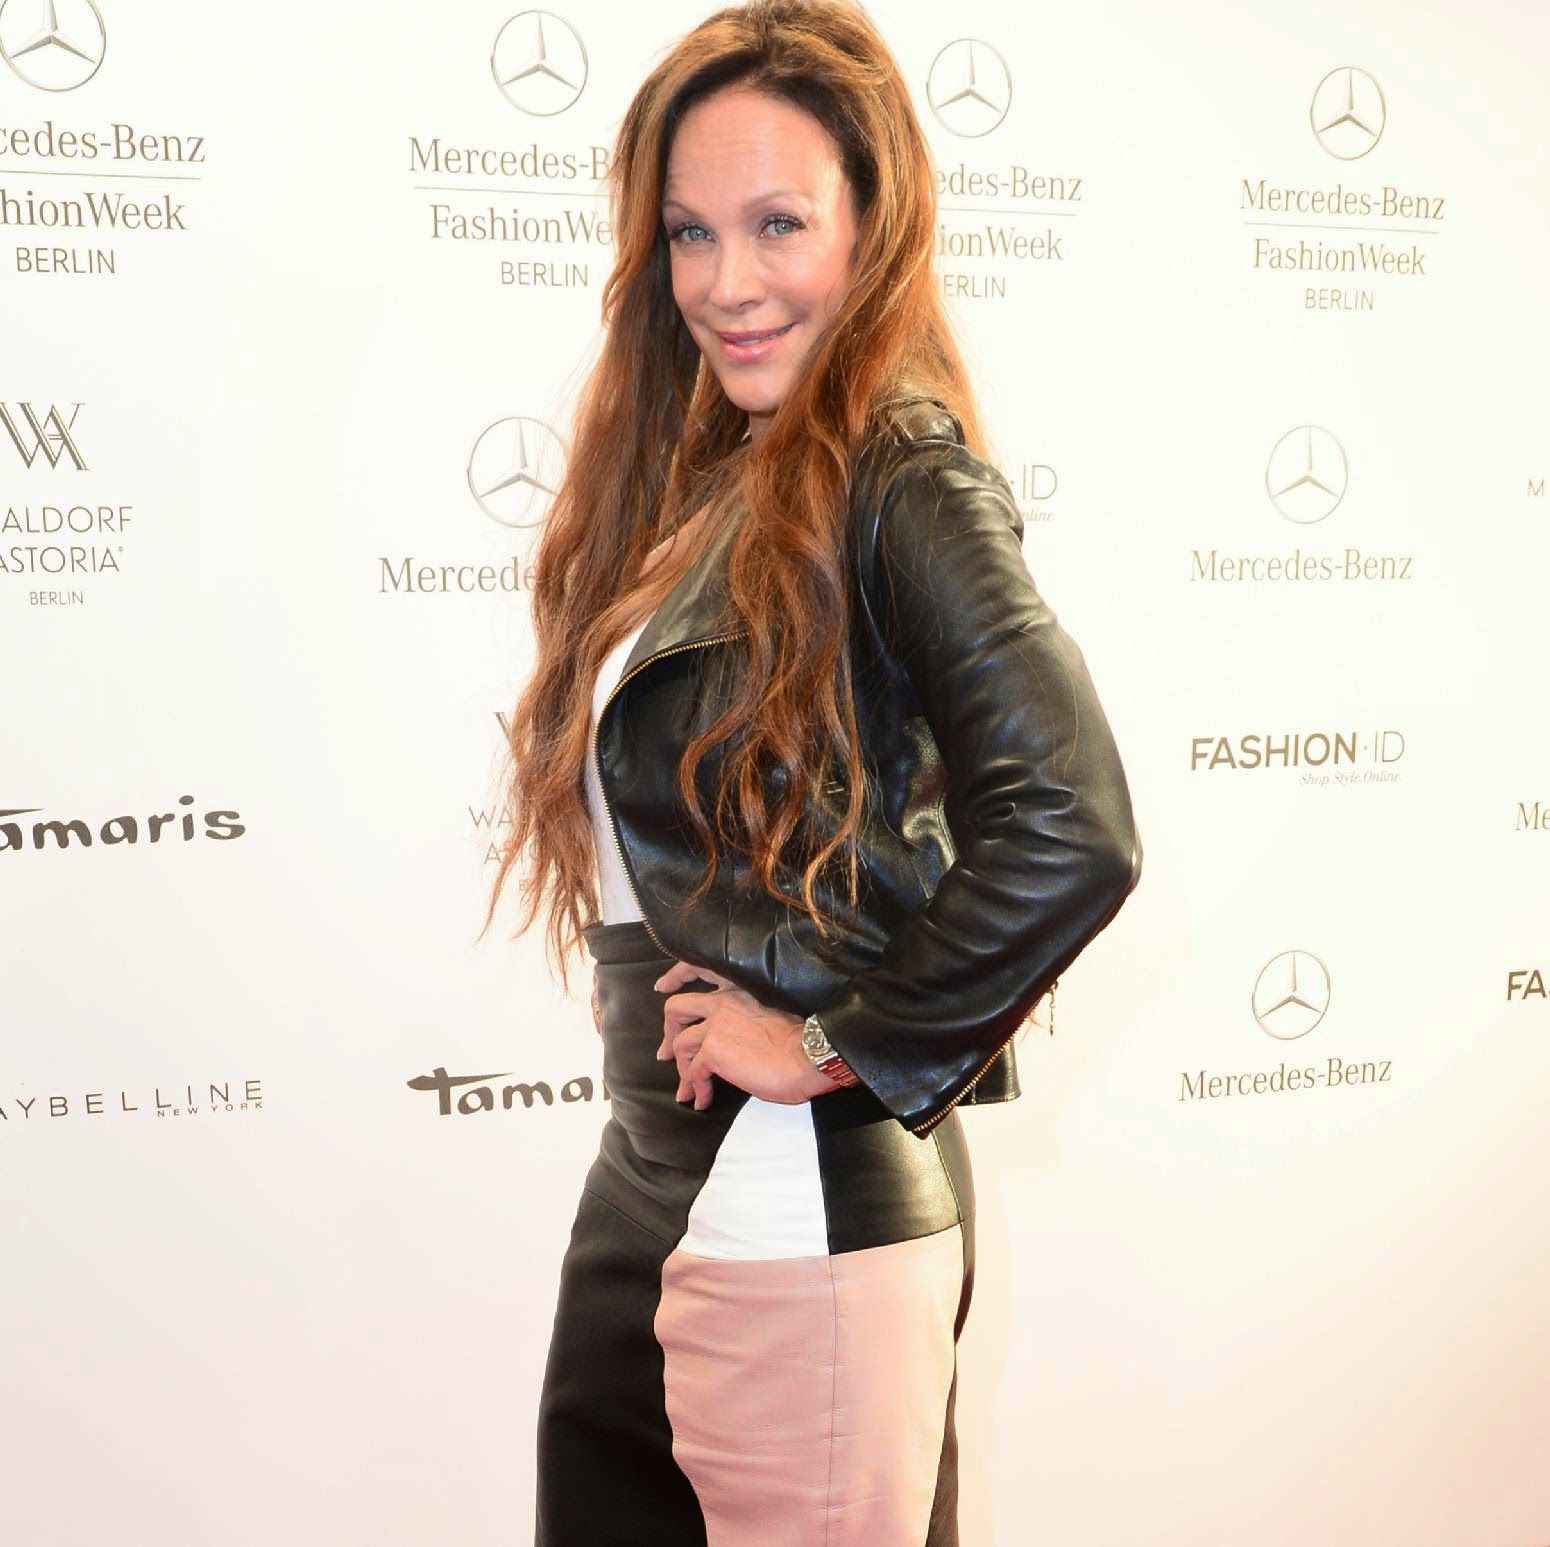 Celebrities In Leather: Sonja Kirchberger looks hot in leather skirt ...